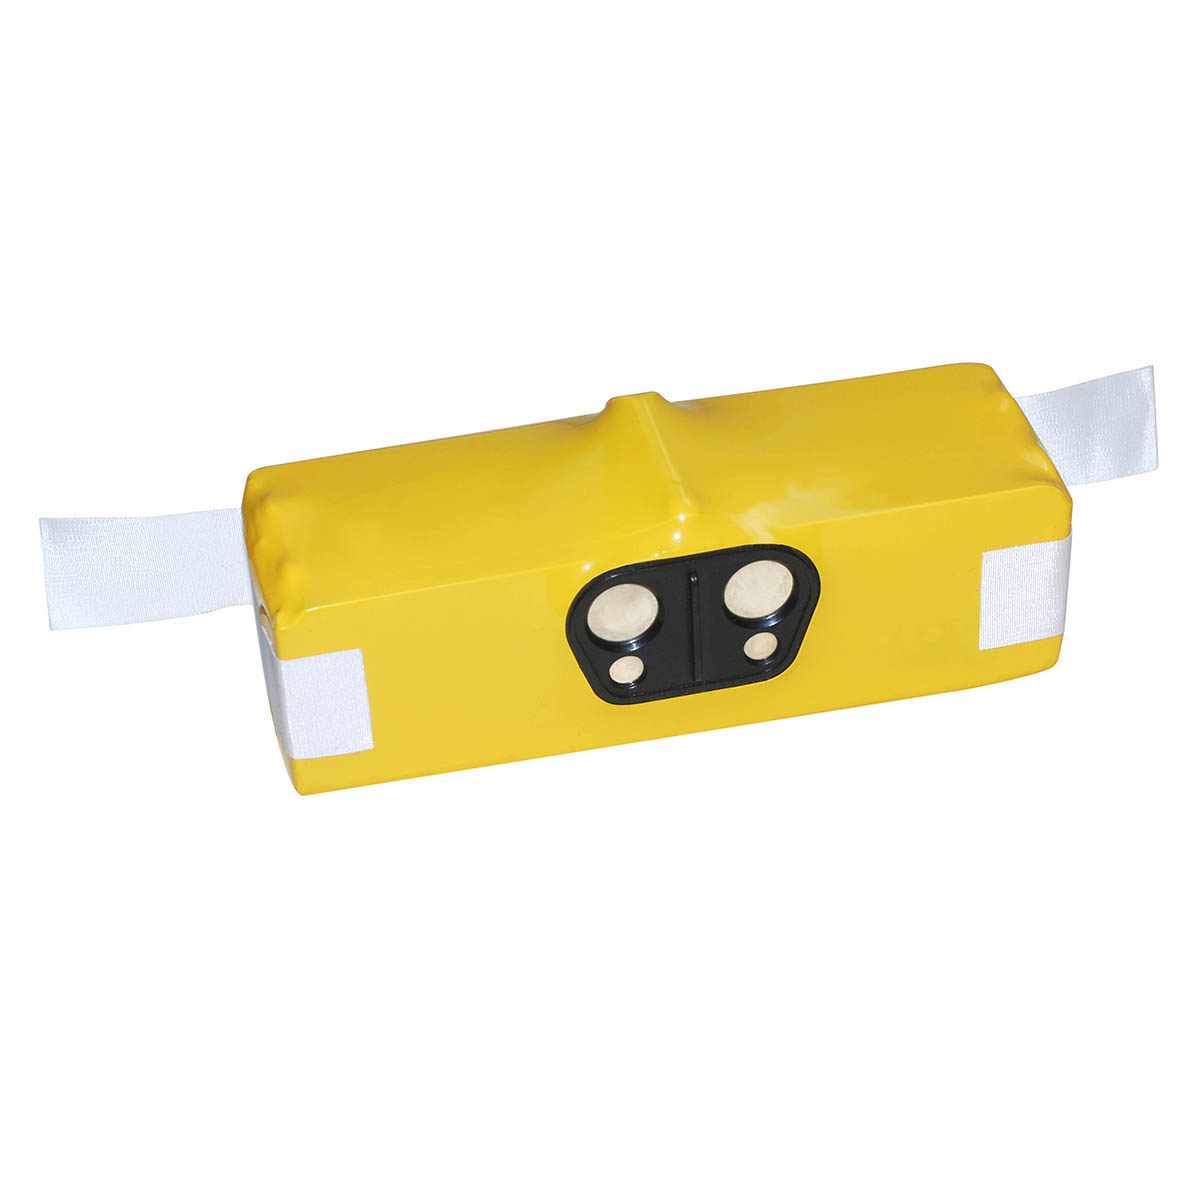 14 4V 3800mAh Ni-MH Rechargeable Battery for Irobot Roomba 500 510 530 531  535 540 545 550 560 562 570 580 581 600 780 L15